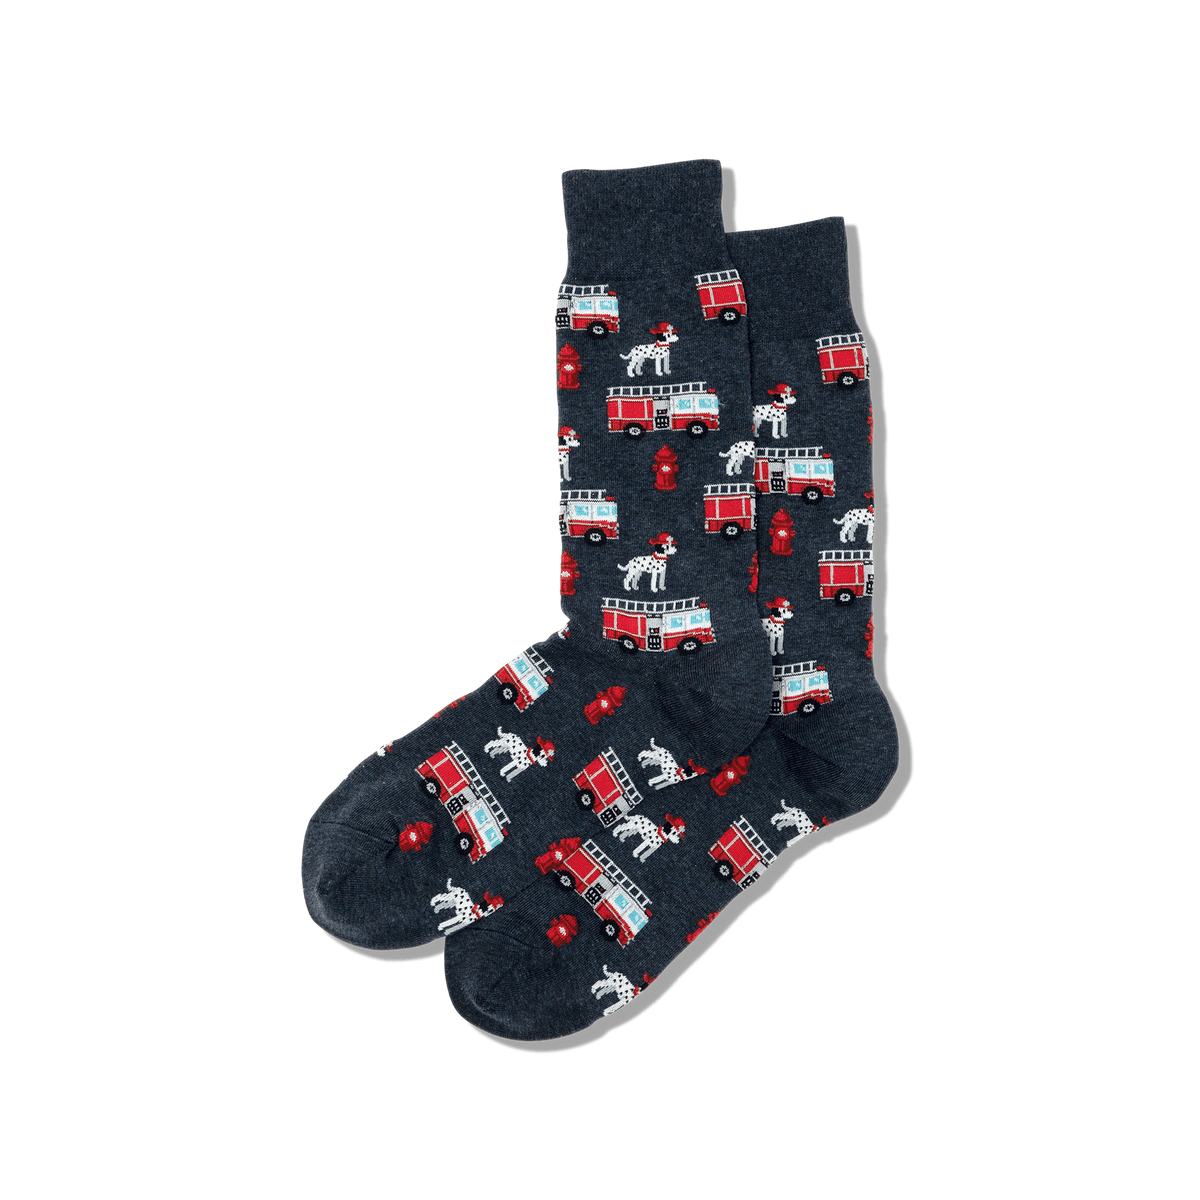 Hot Sox - Men's Fireman Crew Socks